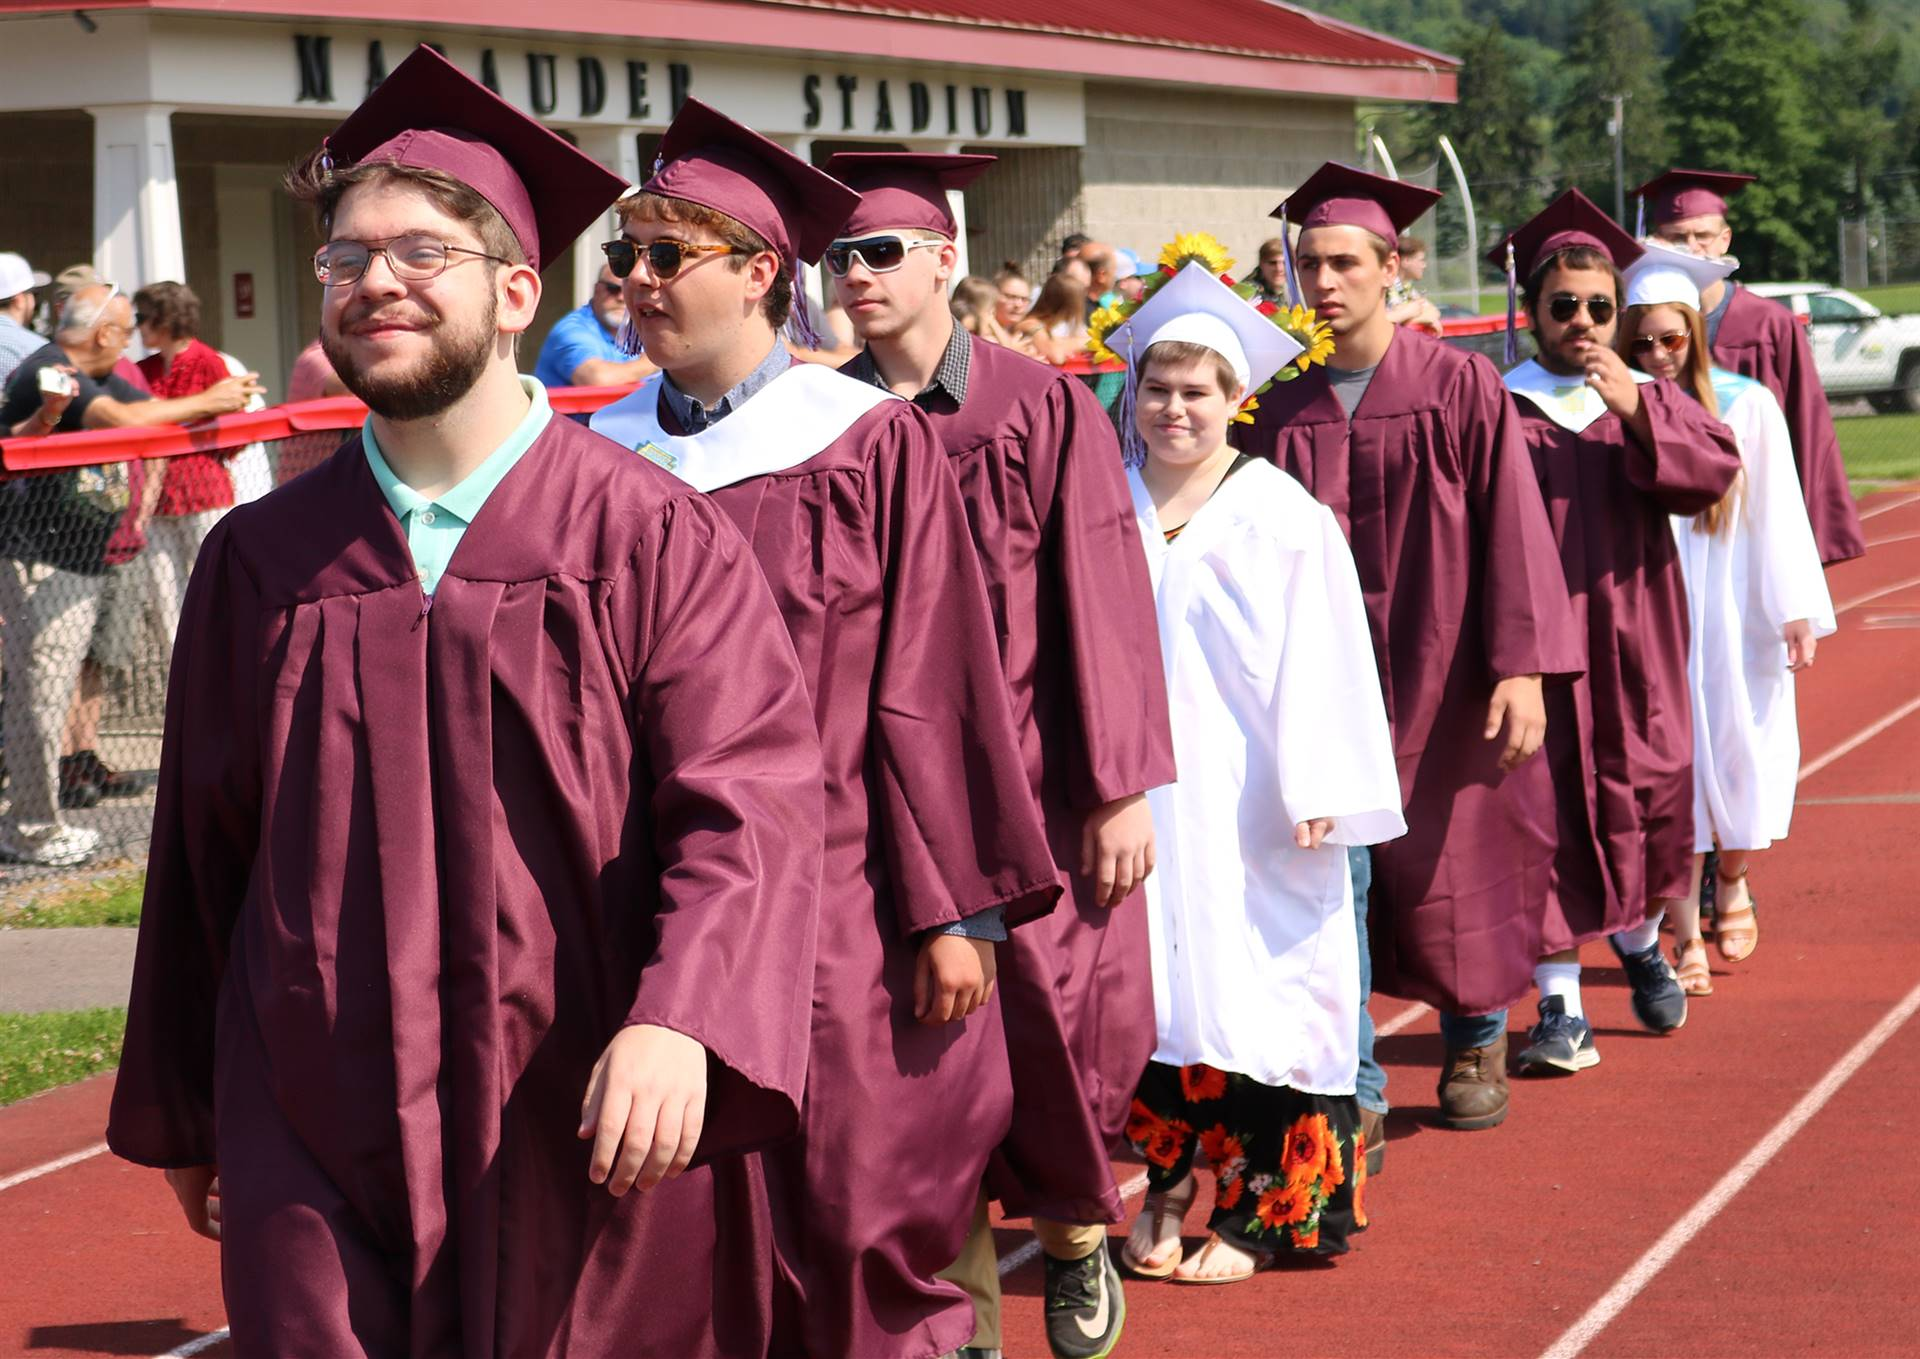 Sherburne-Earlville students in caps and gowns lined up for graduation